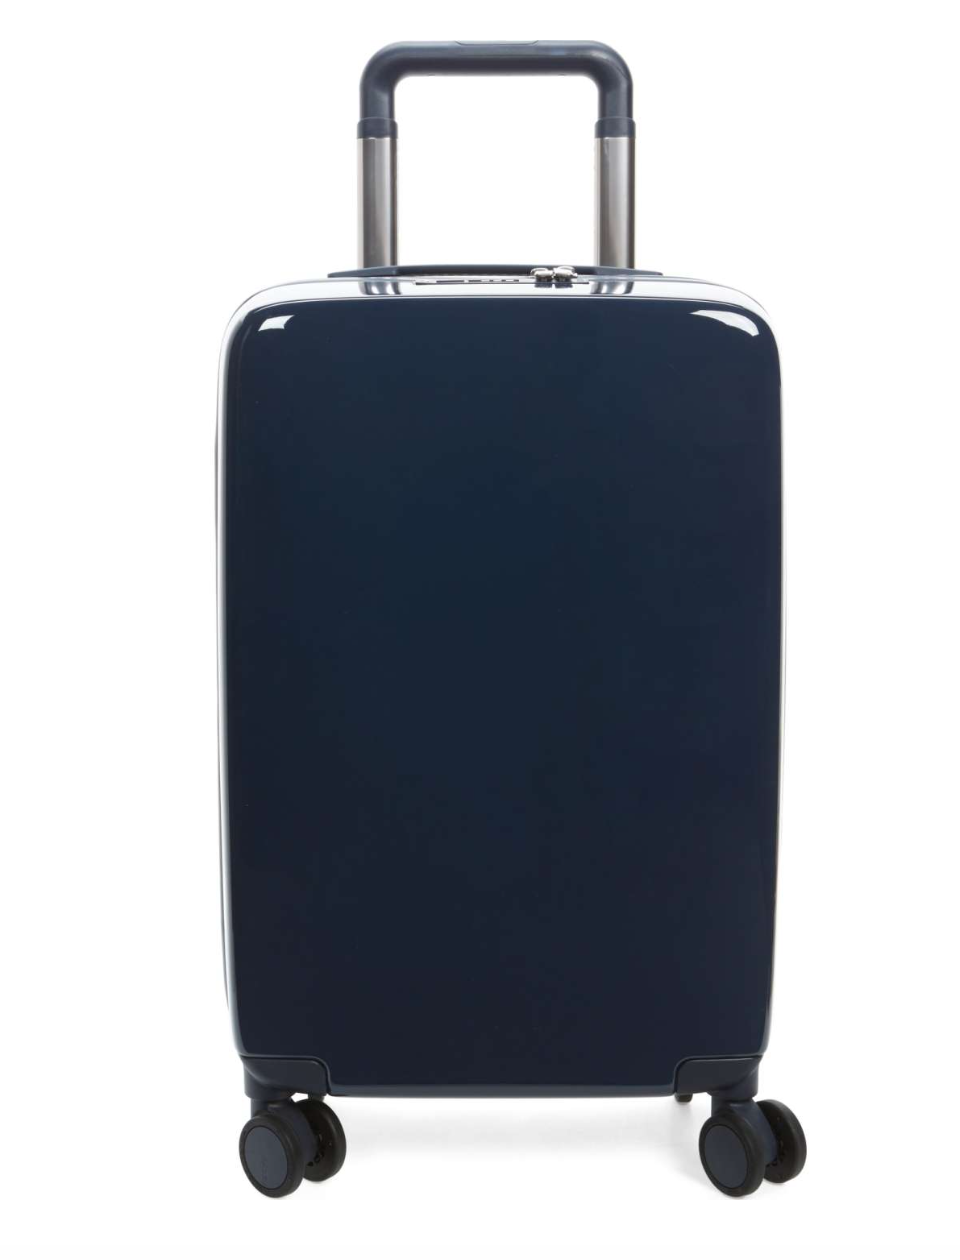 Raden/ The A22 22-Inch Charging Wheeled Carry-On , $295.00